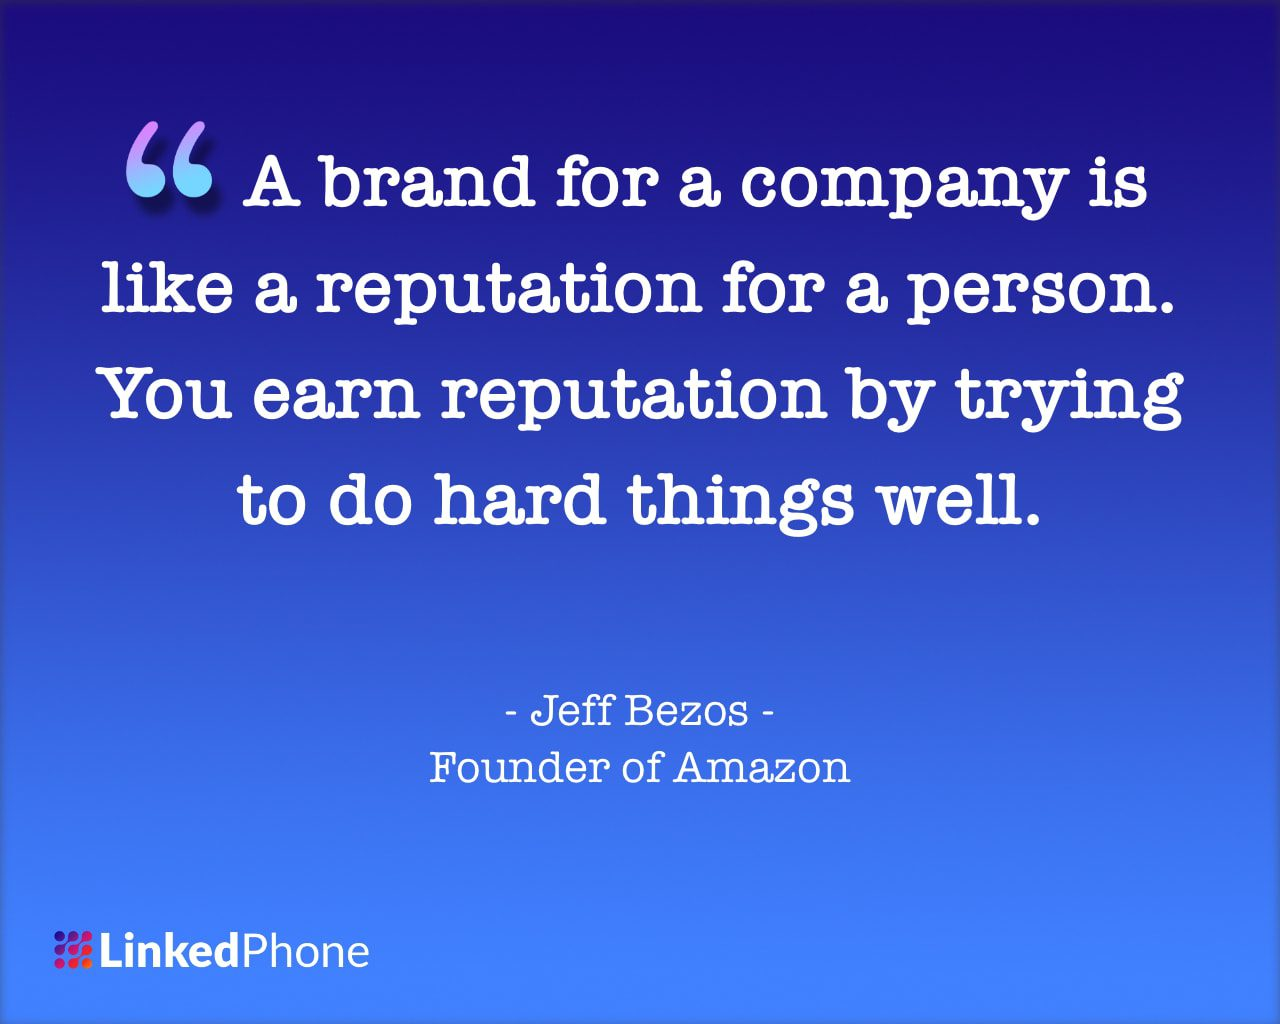 Jeff Bezos - Motivational Inspirational Quotes and Sayings